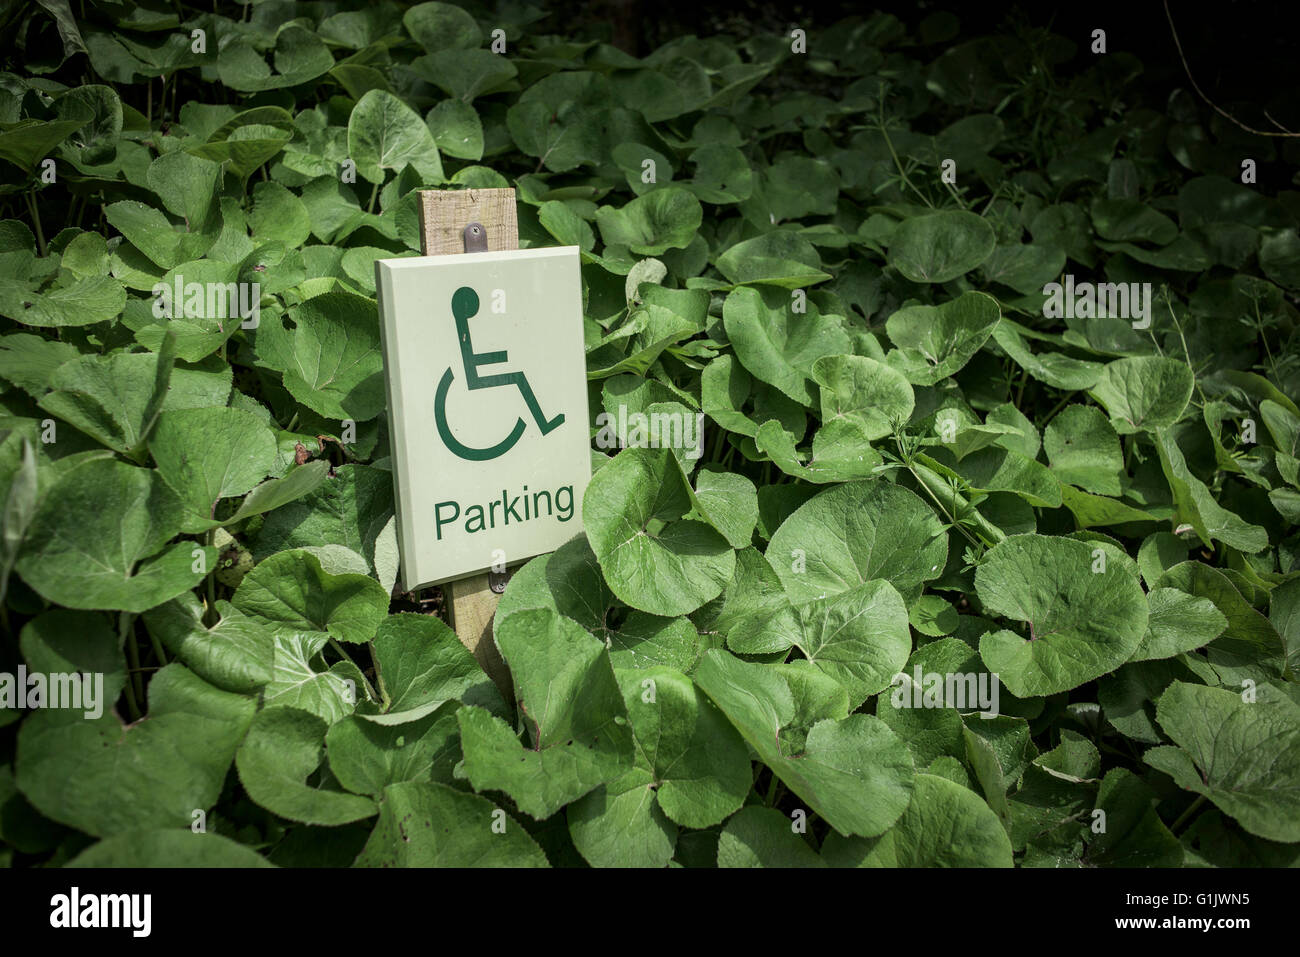 A sign for disabled parking. - Stock Image